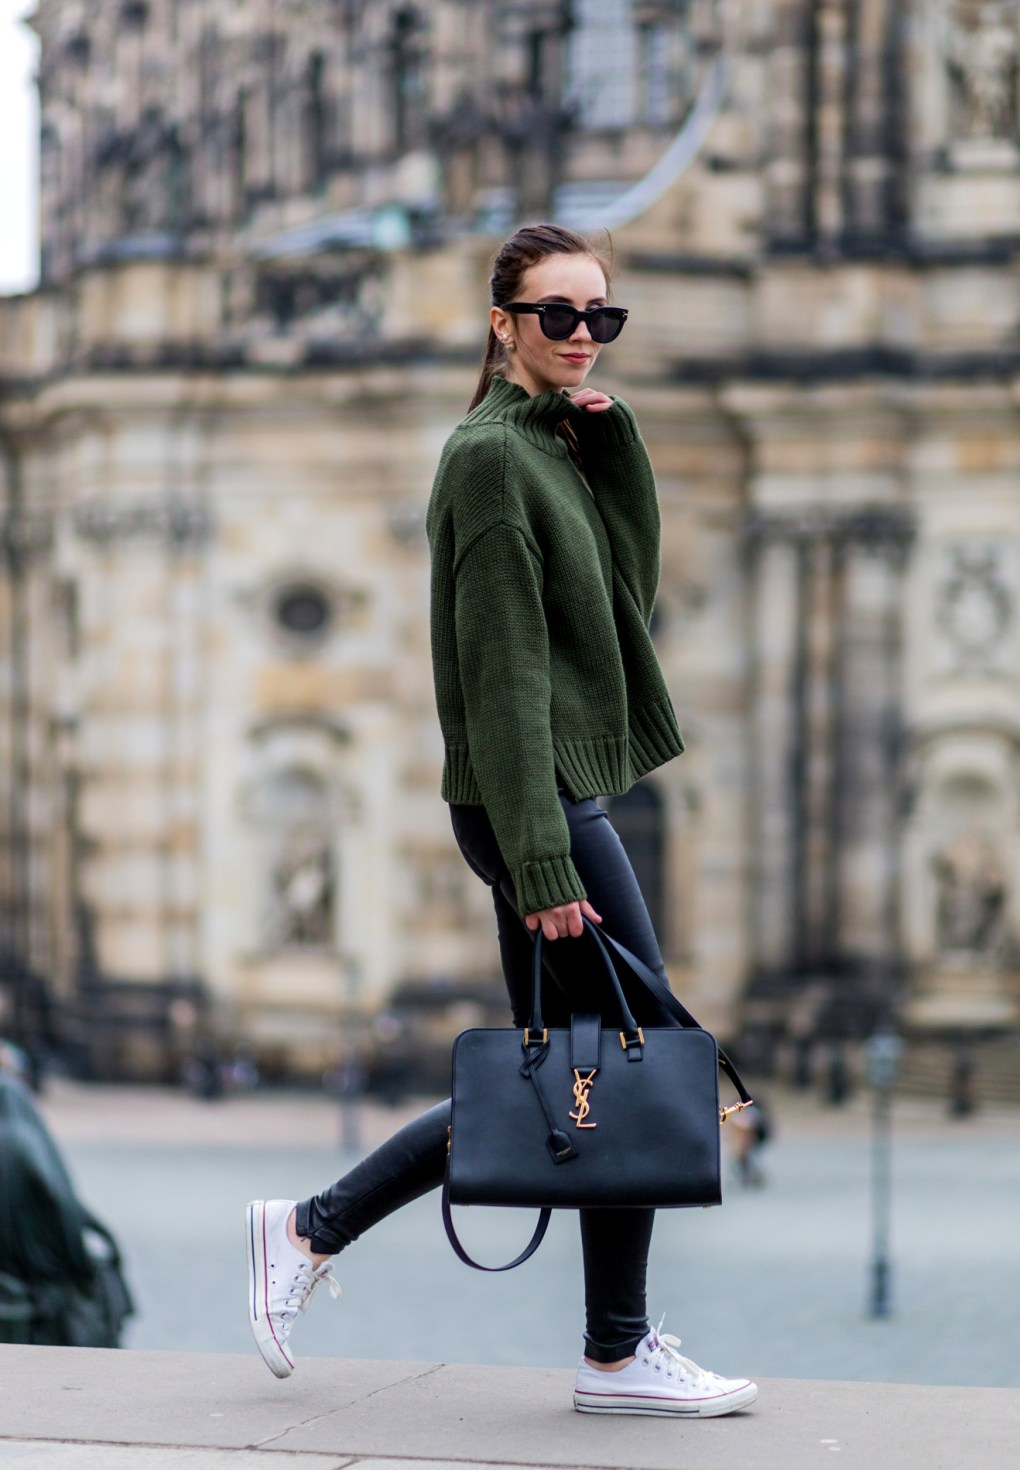 White converse can also make the perfect match to a knitwear look, like this stylish oversized bottle green sweater worn by Barbora Ondrackova with converse and leather leggings. Jumper: Asos, Leggings: Balenciaga, Sneakers: Converse.